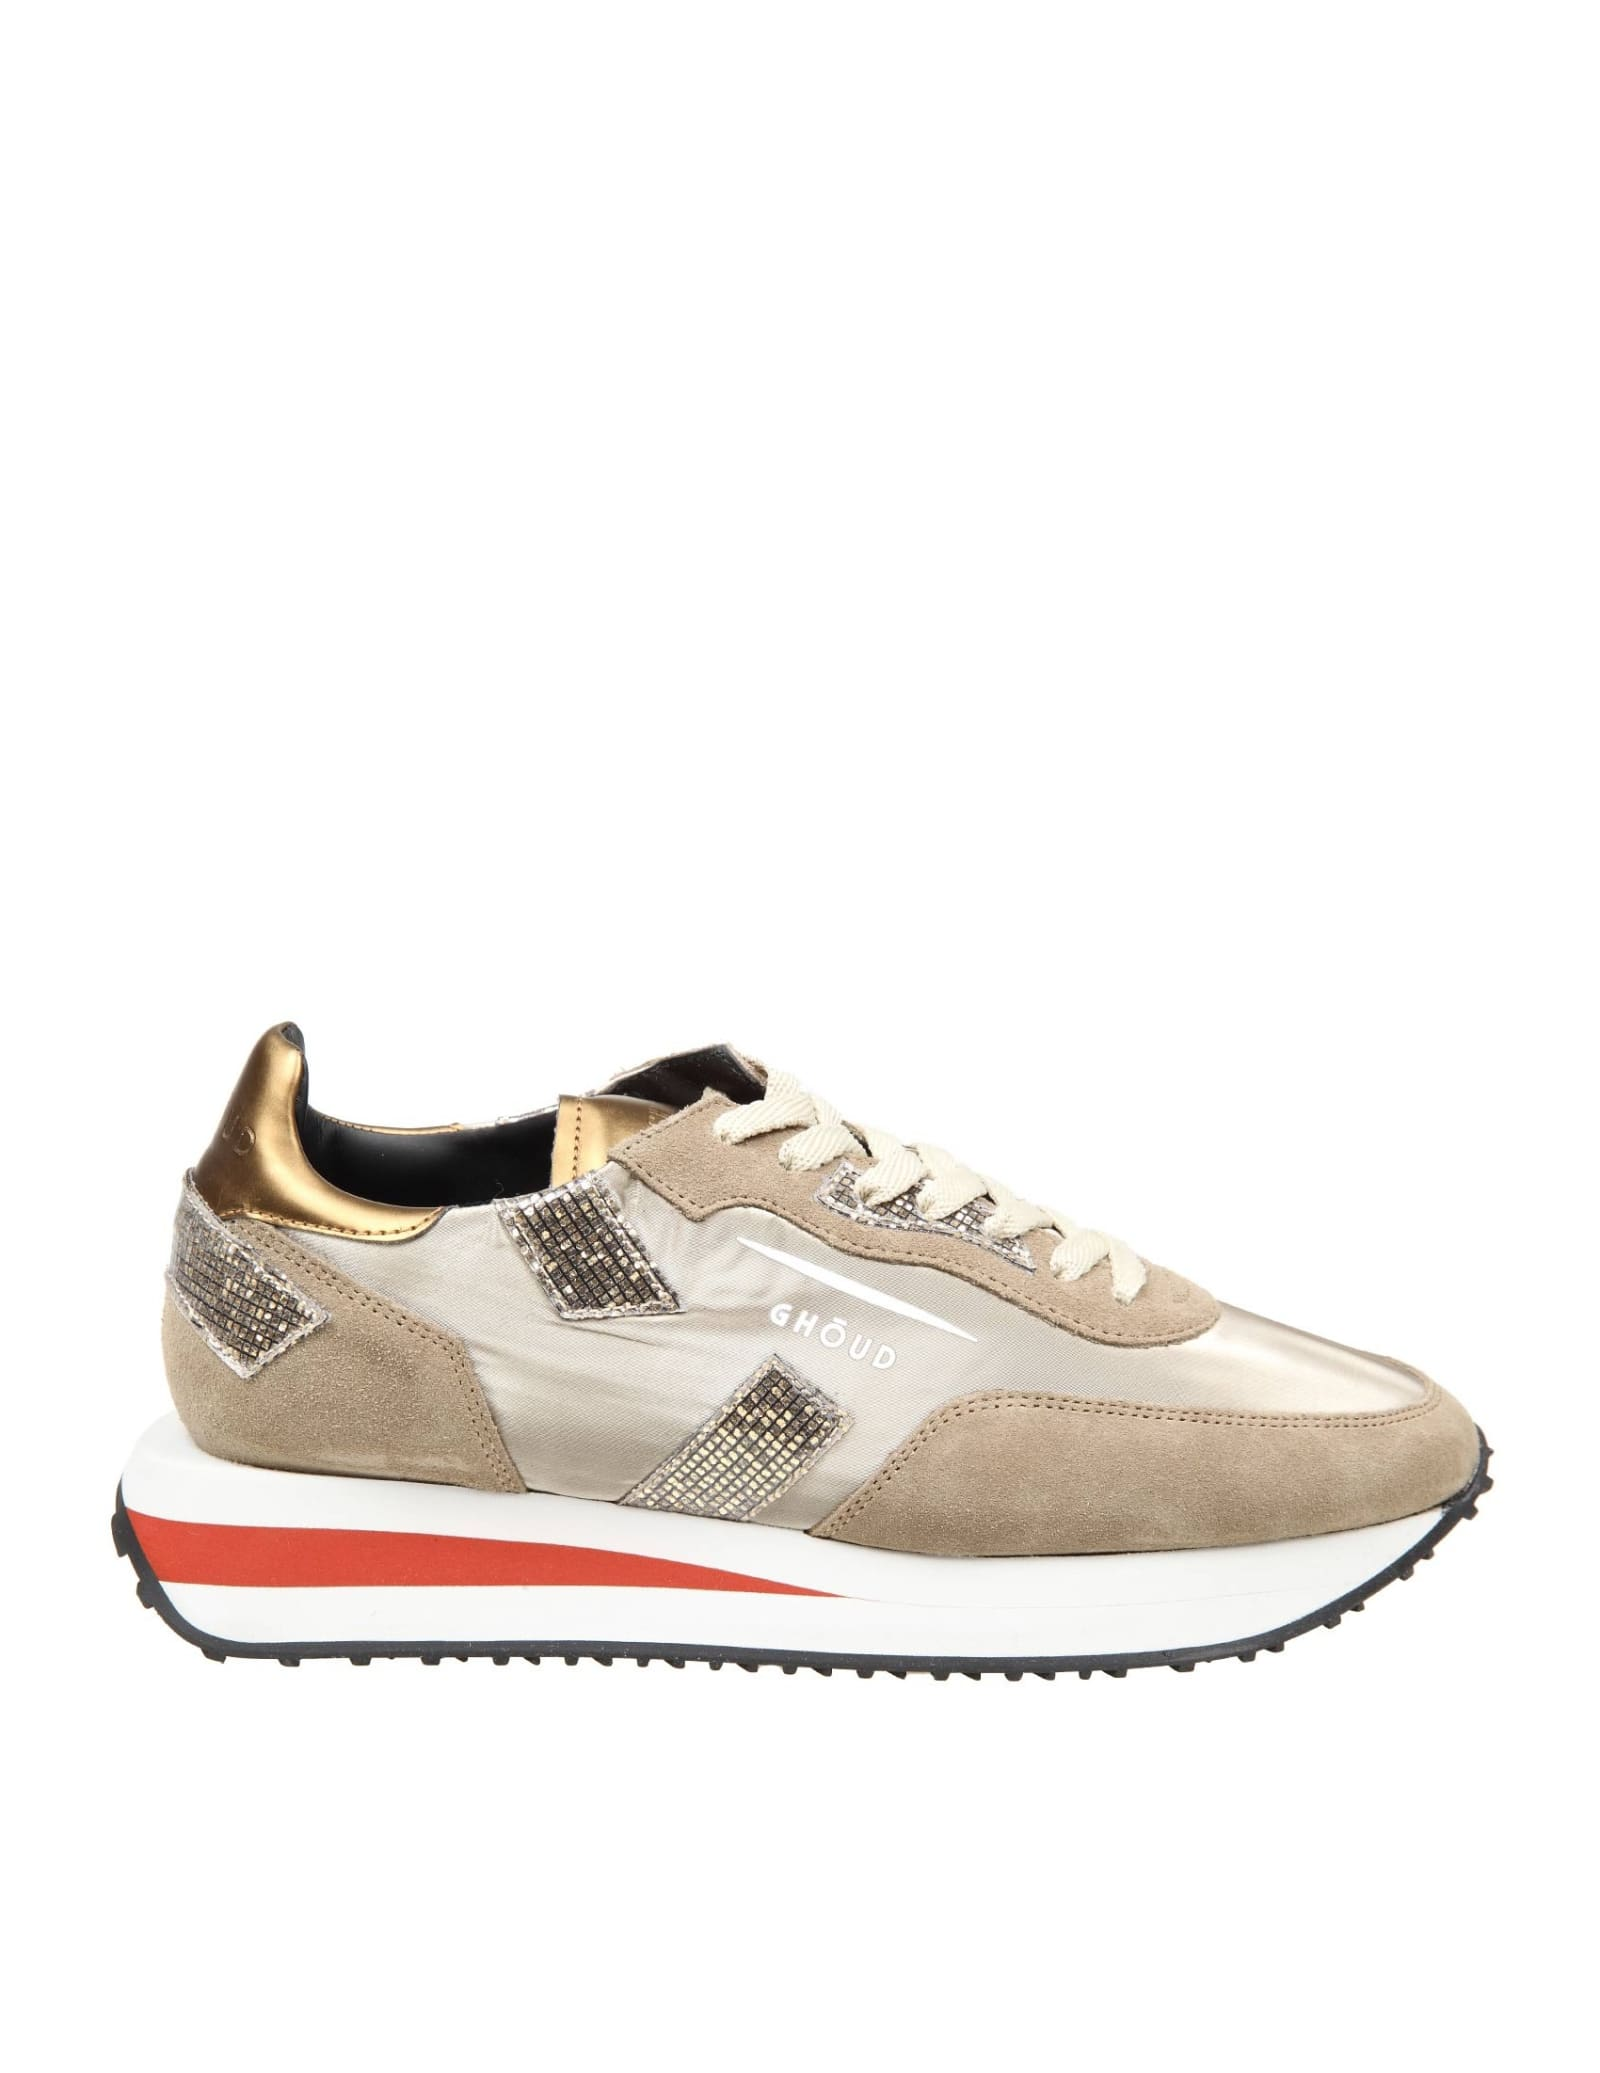 Ghoud GHOUD SNEAKERS RUSH IN SUEDE AND NYLON COLOR SAND